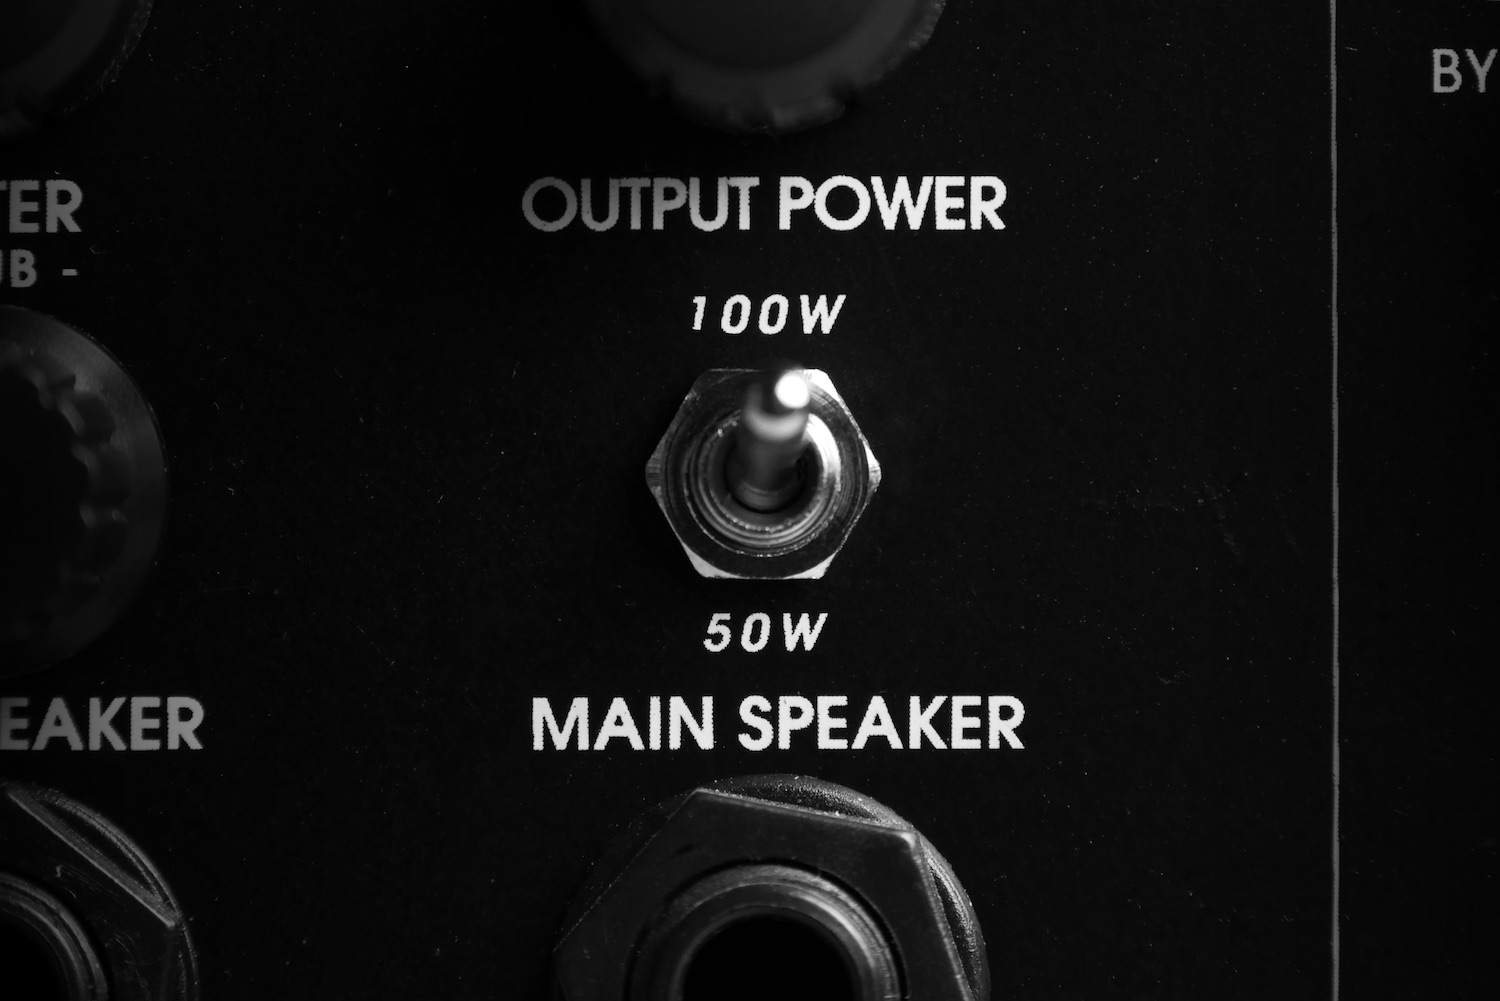 200-WATTS STEREO OUTPUT - Class-D amplifier, the most efficient power amplifier nowadays. It provides a very wide audio frequency response and very sensitive to transient attack and punch. Different from traditional tube power section, GA1.1 provides a more massive low end punch and crispier high end detail. And most important, It doesn't degrade over time, no service is needed. It also produce 80% less heat than traditional class-A power amplifier. These are the reasons why Class-D amplifier can also be found in all high end studio monitors.